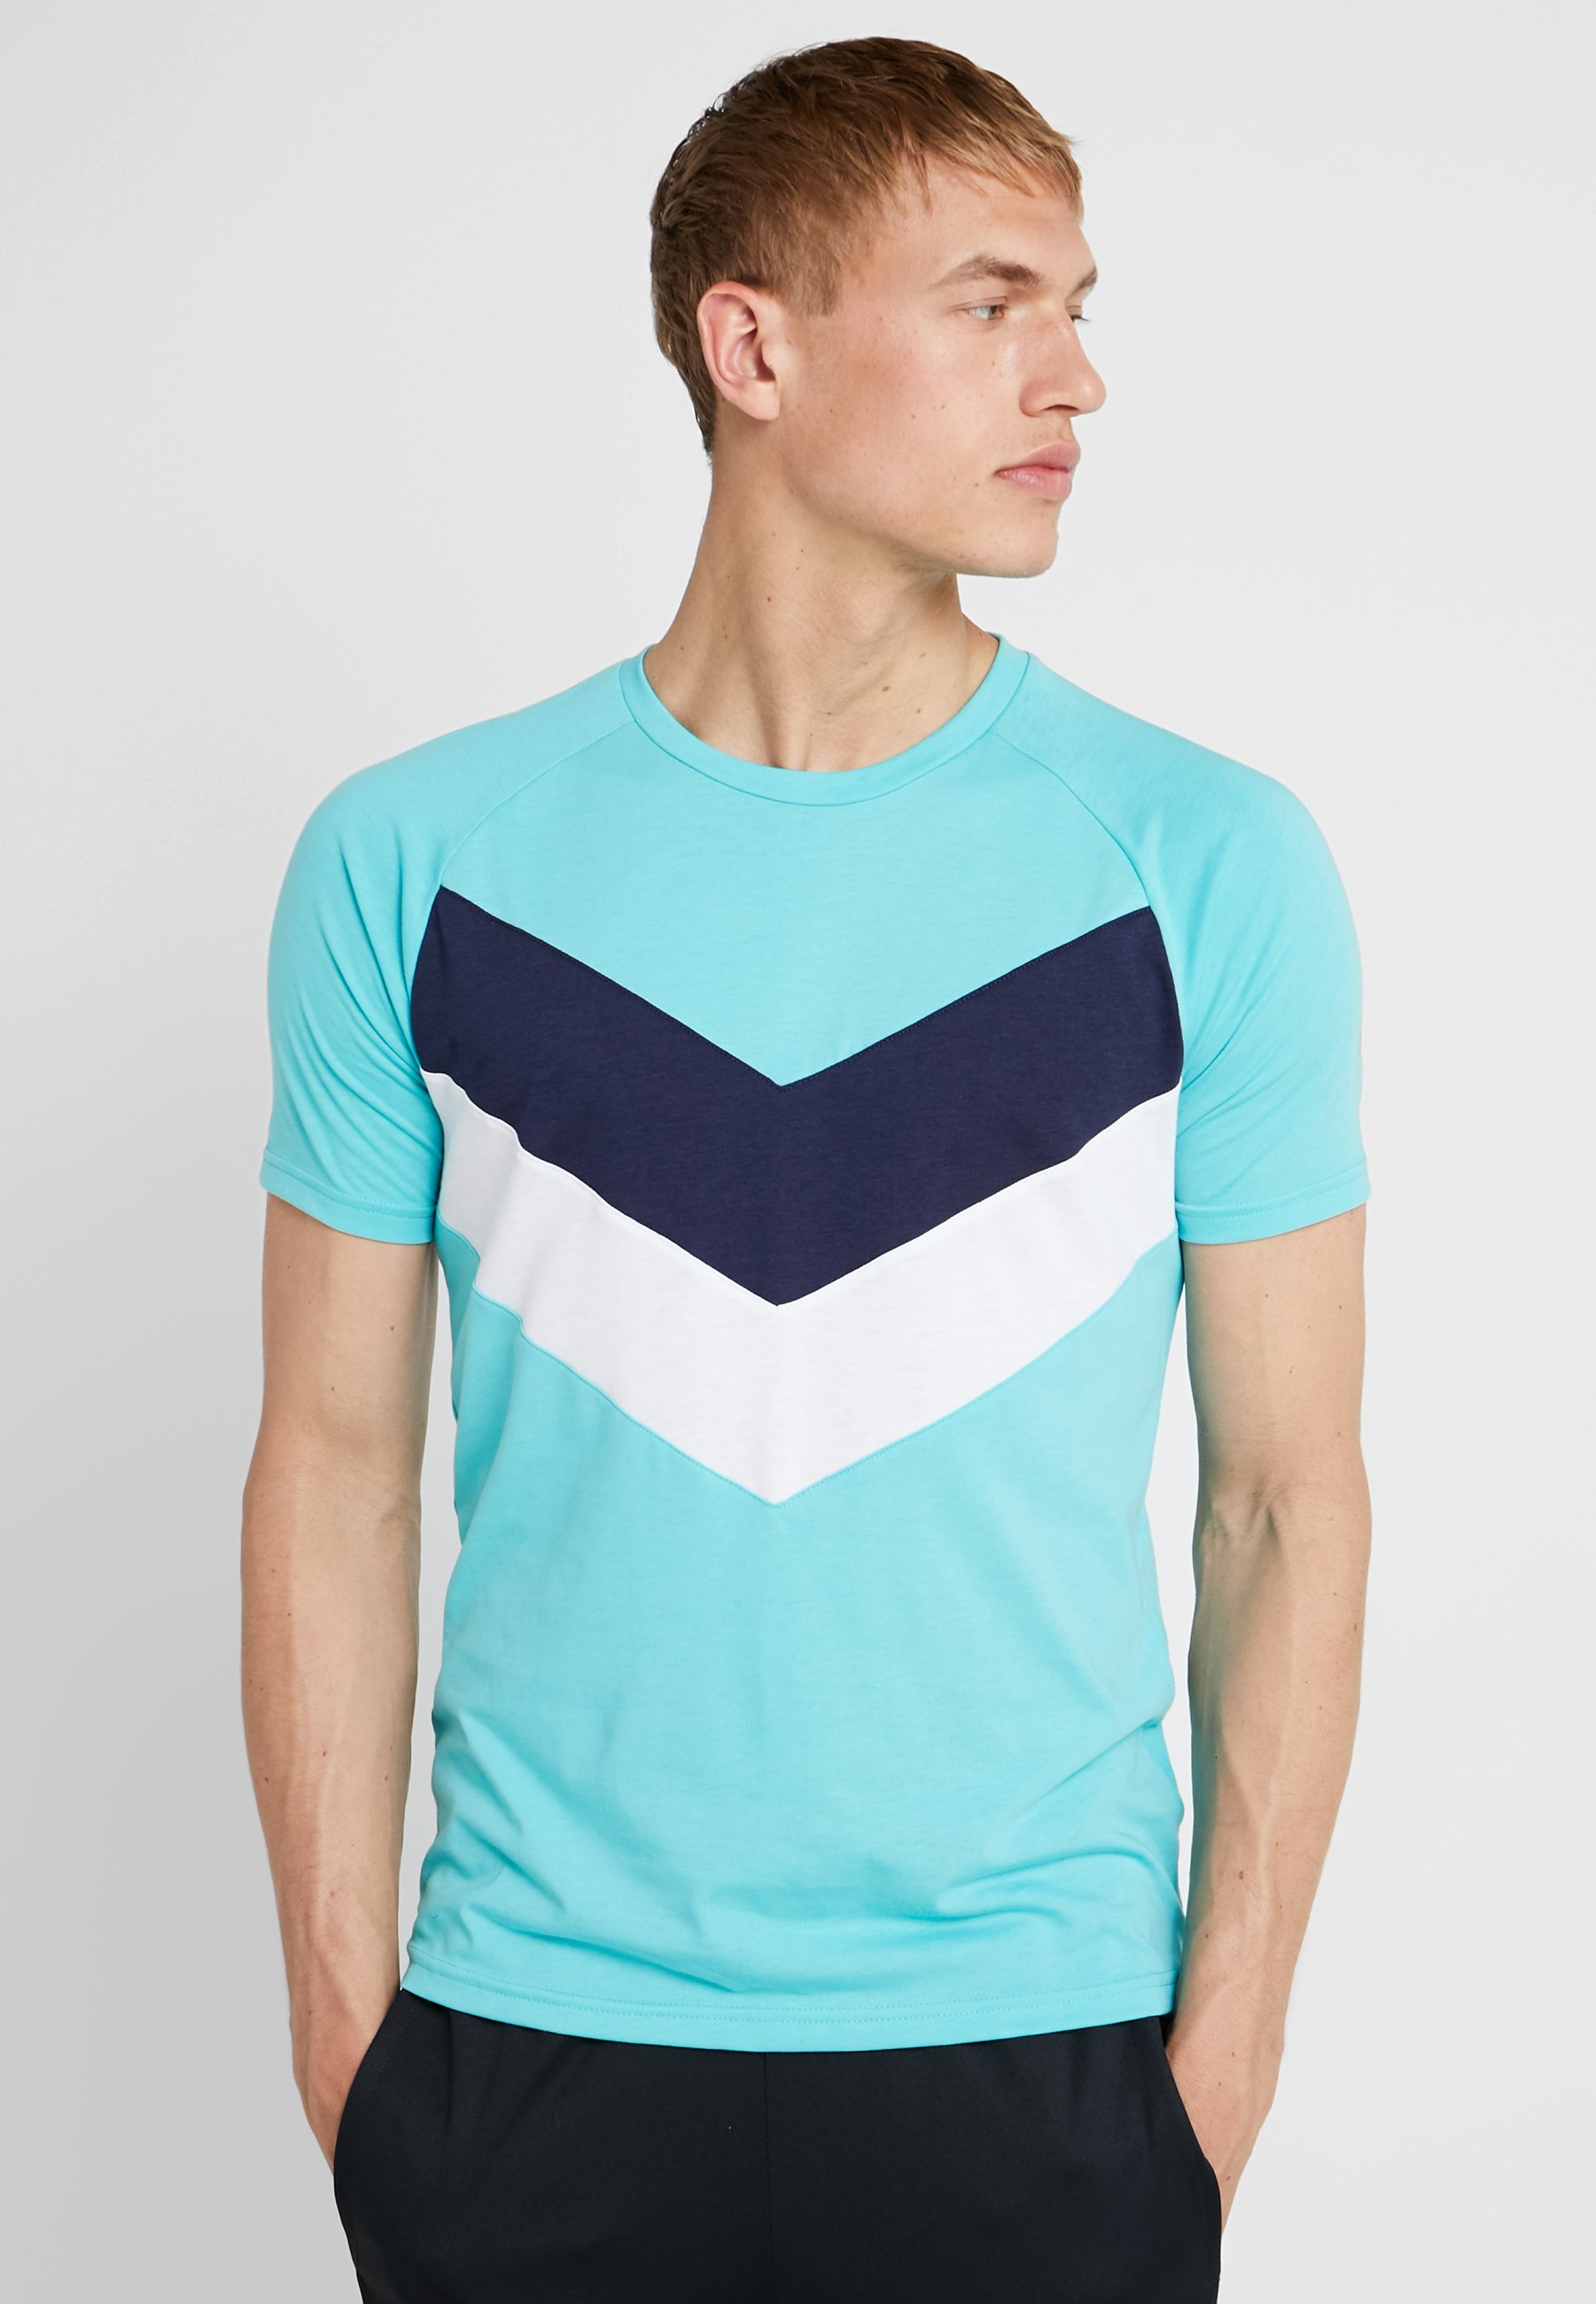 shirt Blue TeeT Block Puma Turquoise Reactive Color Imprimé gfbyvY76